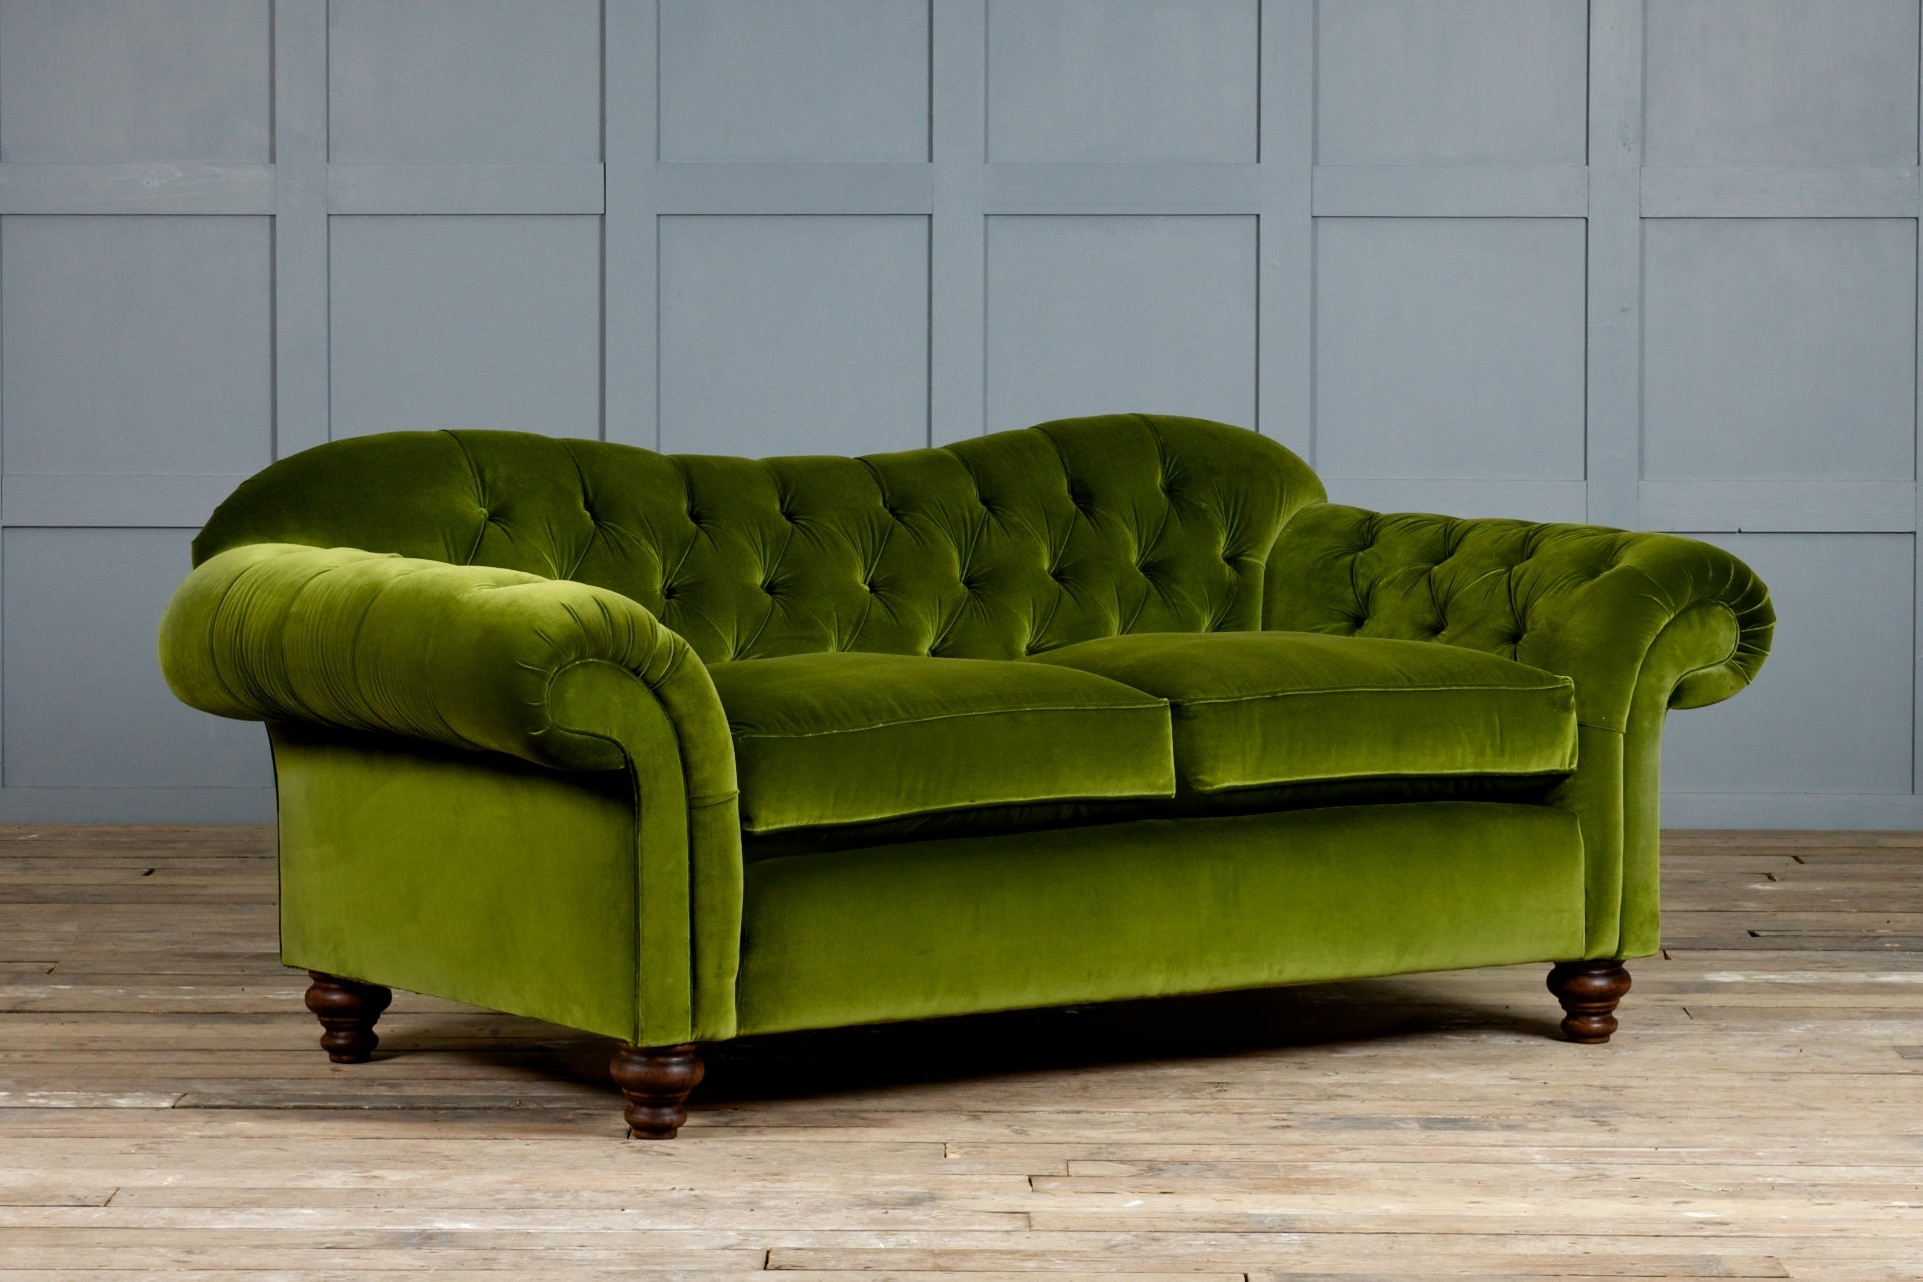 Well Liked Furniture : Perfect Green Velvet Couch 85 In Modern Sofa Ideas Throughout Green Sofa Chairs (View 13 of 15)